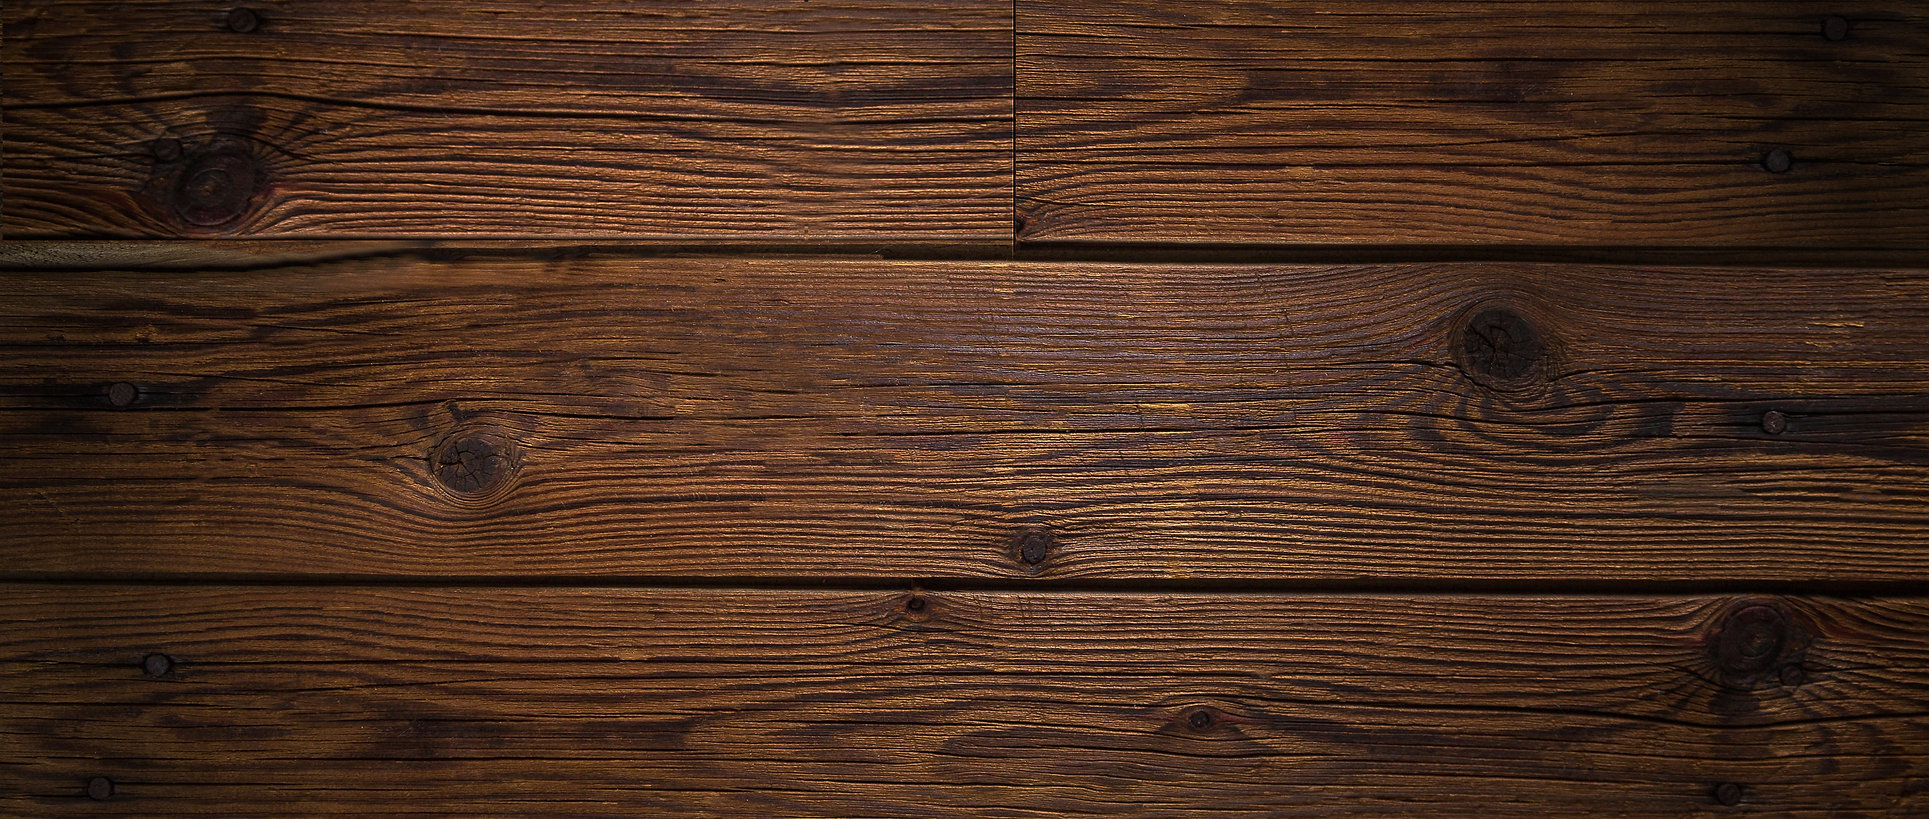 background-board-carpentry-construction-